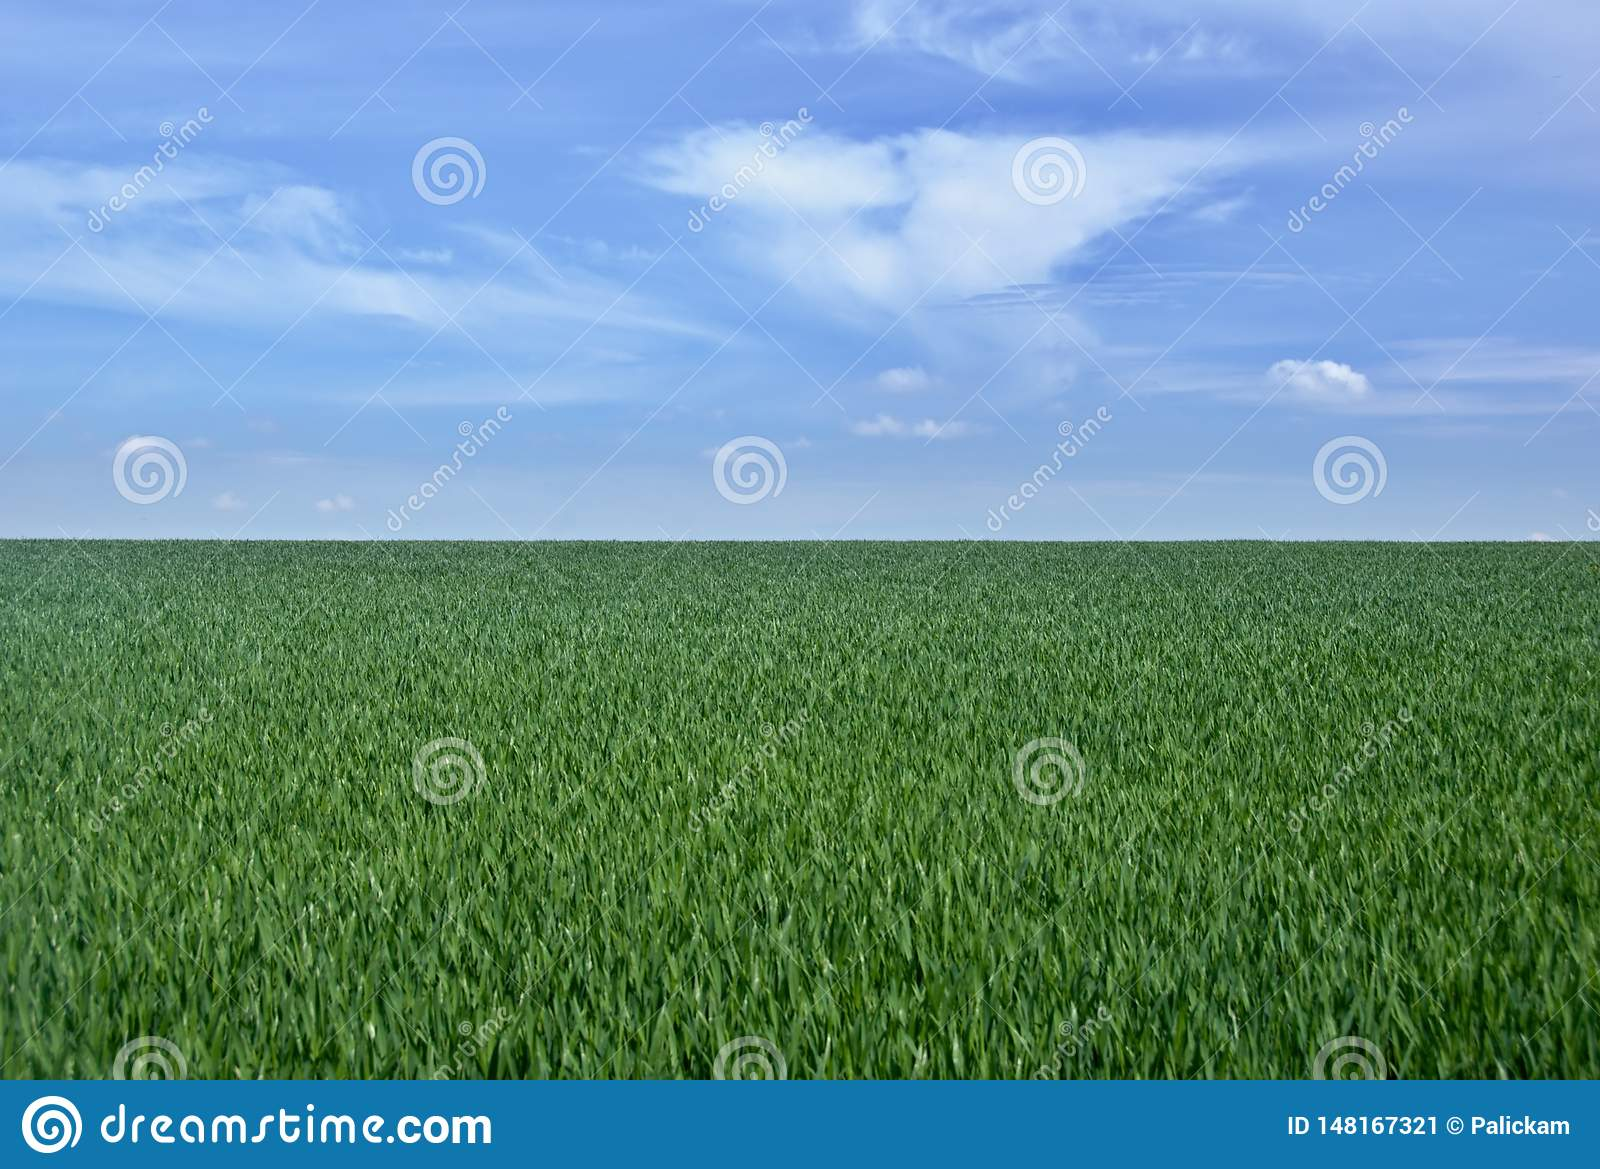 Field of young sprouts of wheat